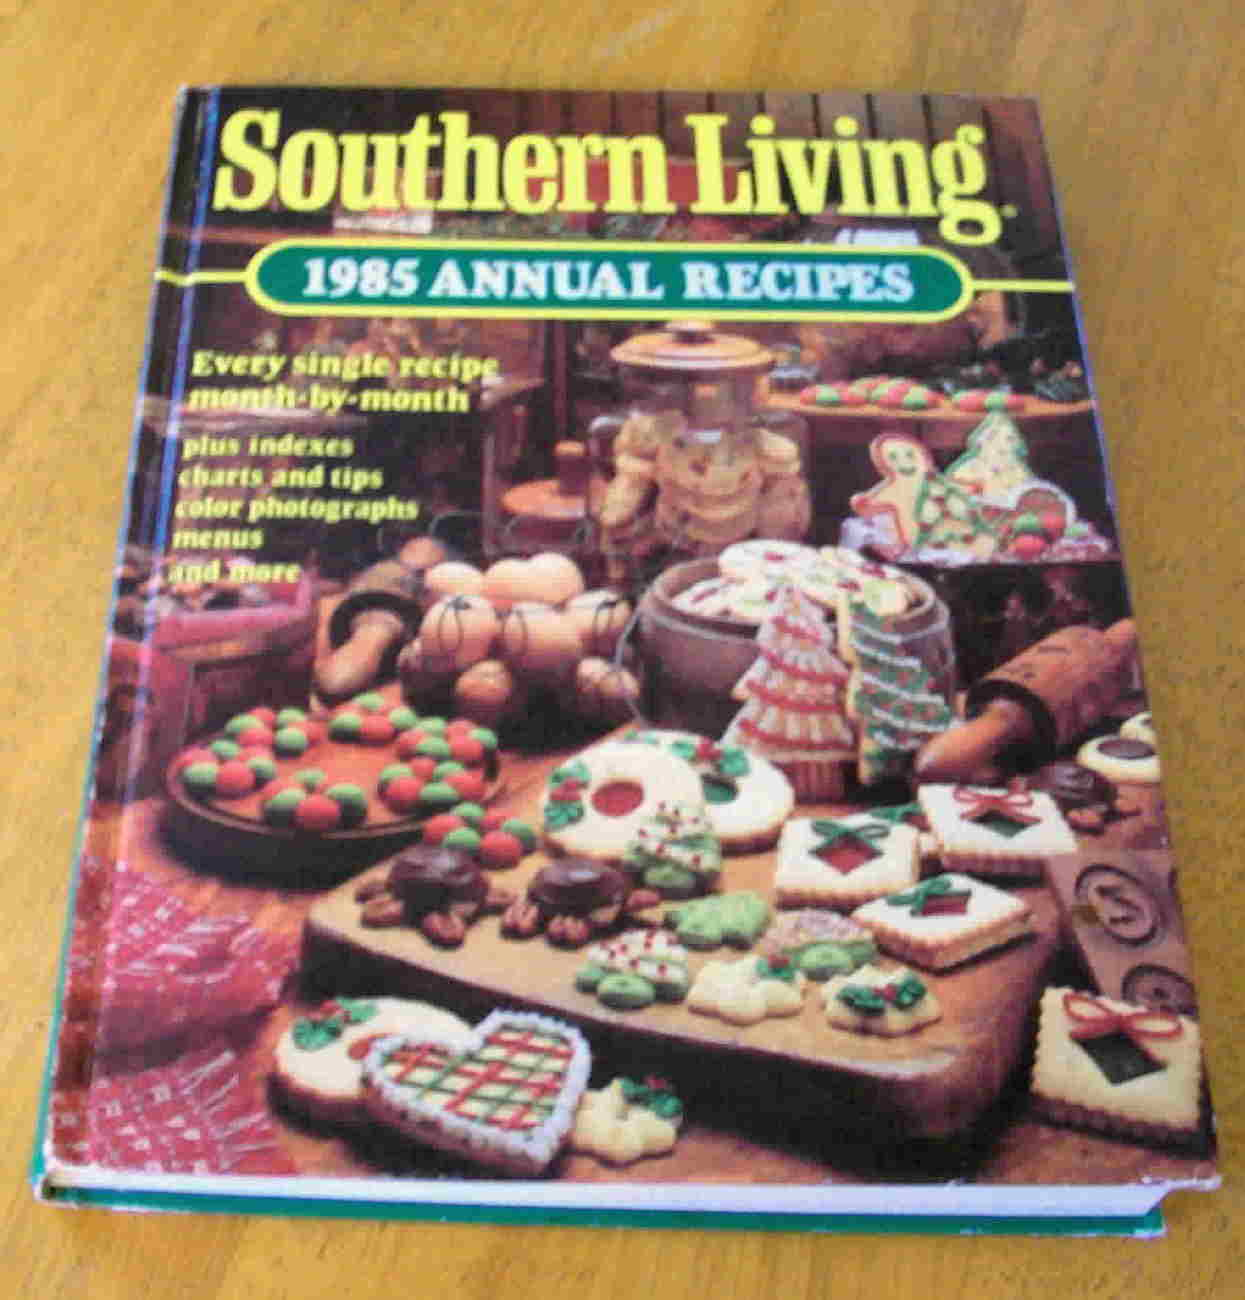 Southern Living 1985 Annual Recipes Hardback